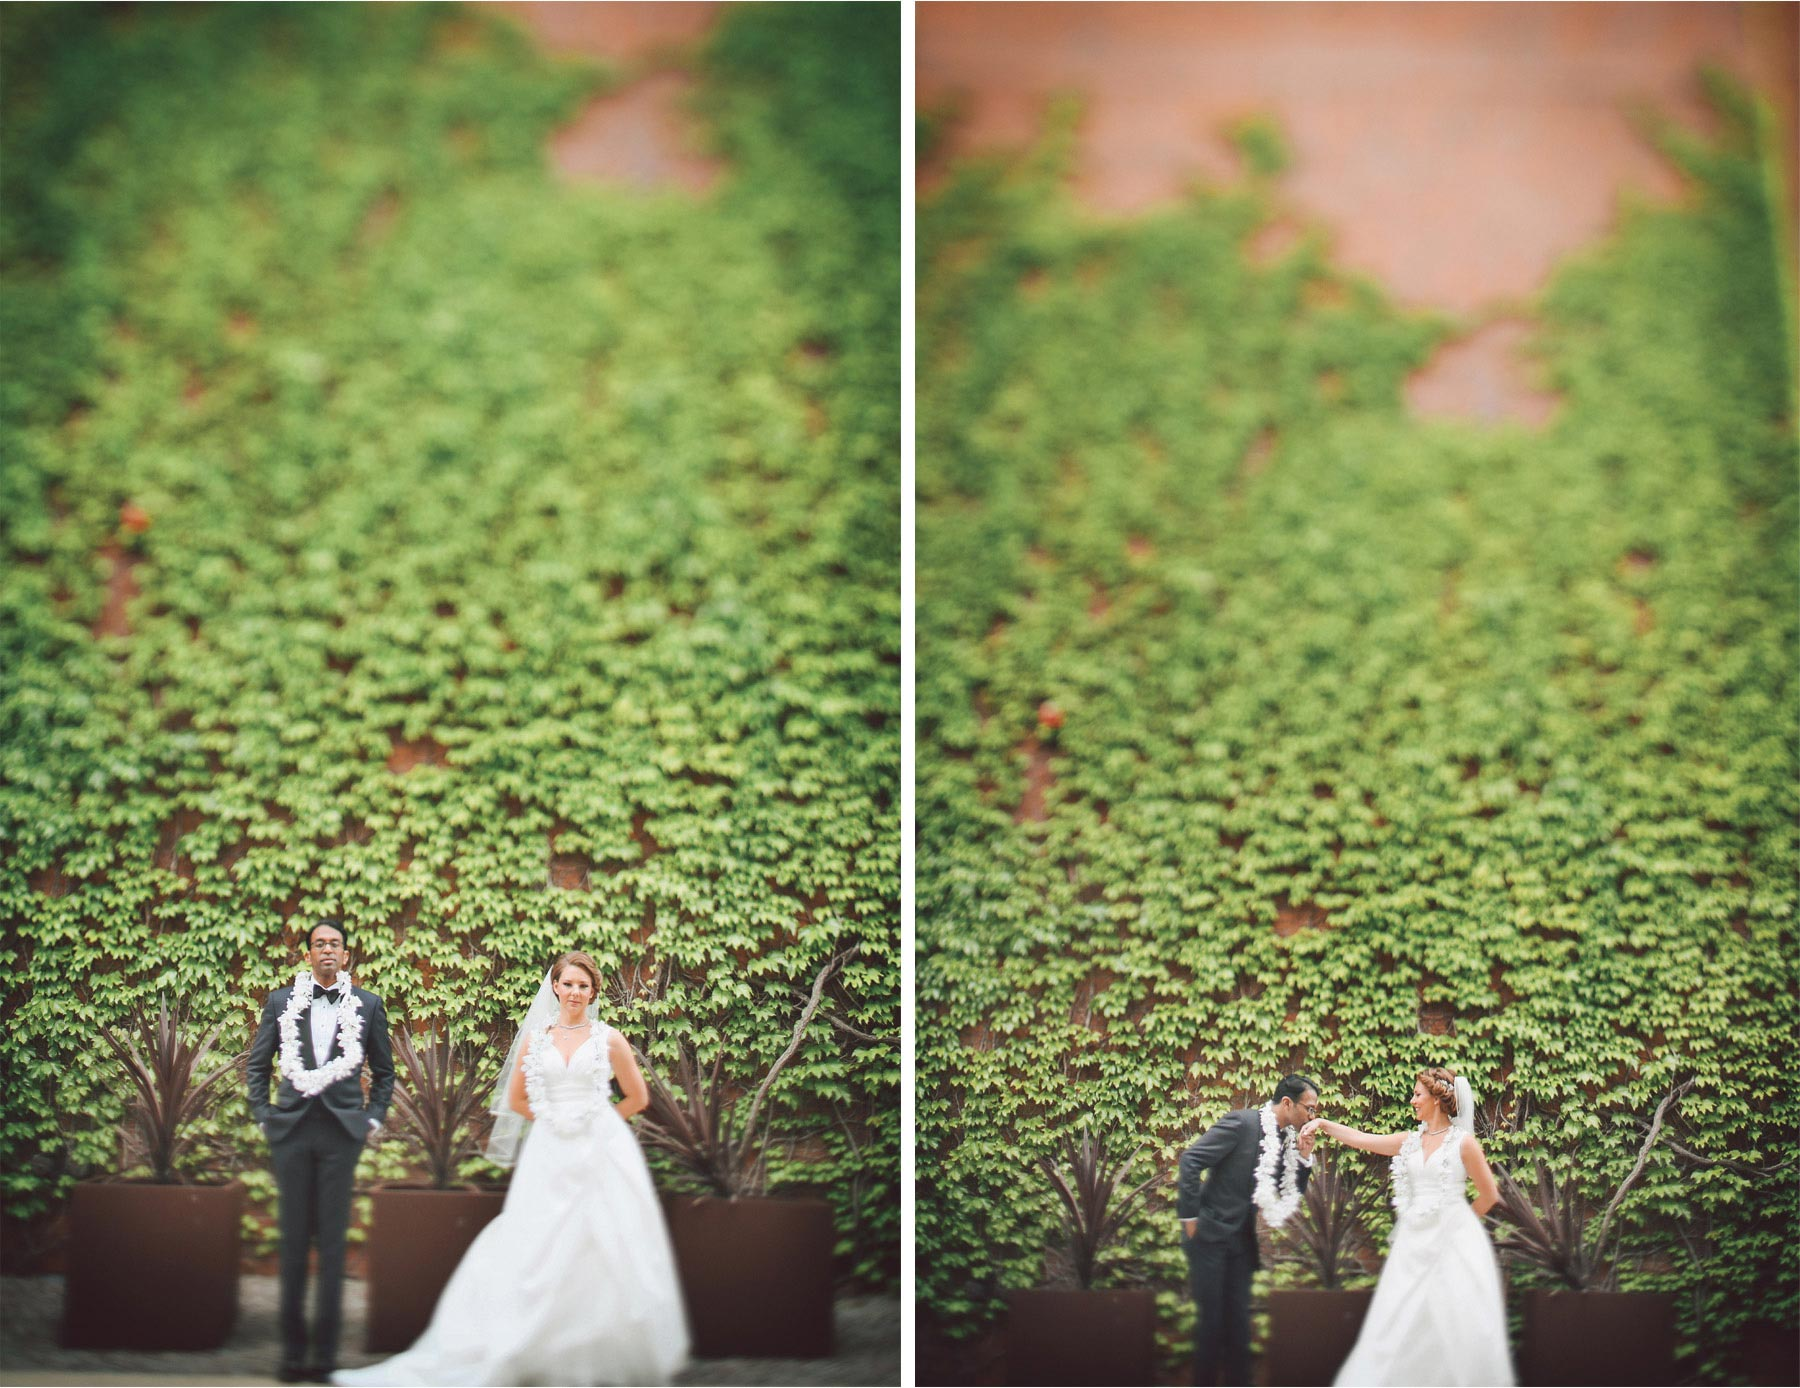 16-Minneapolis-Minnesota-Wedding-Photographer-by-Andrew-Vick-Photography--Spring-Bride-Groom-Kiss-Indian-Floral-Lei-Tilt-Shift-Vintage-Rachel-and-Venu.jpg